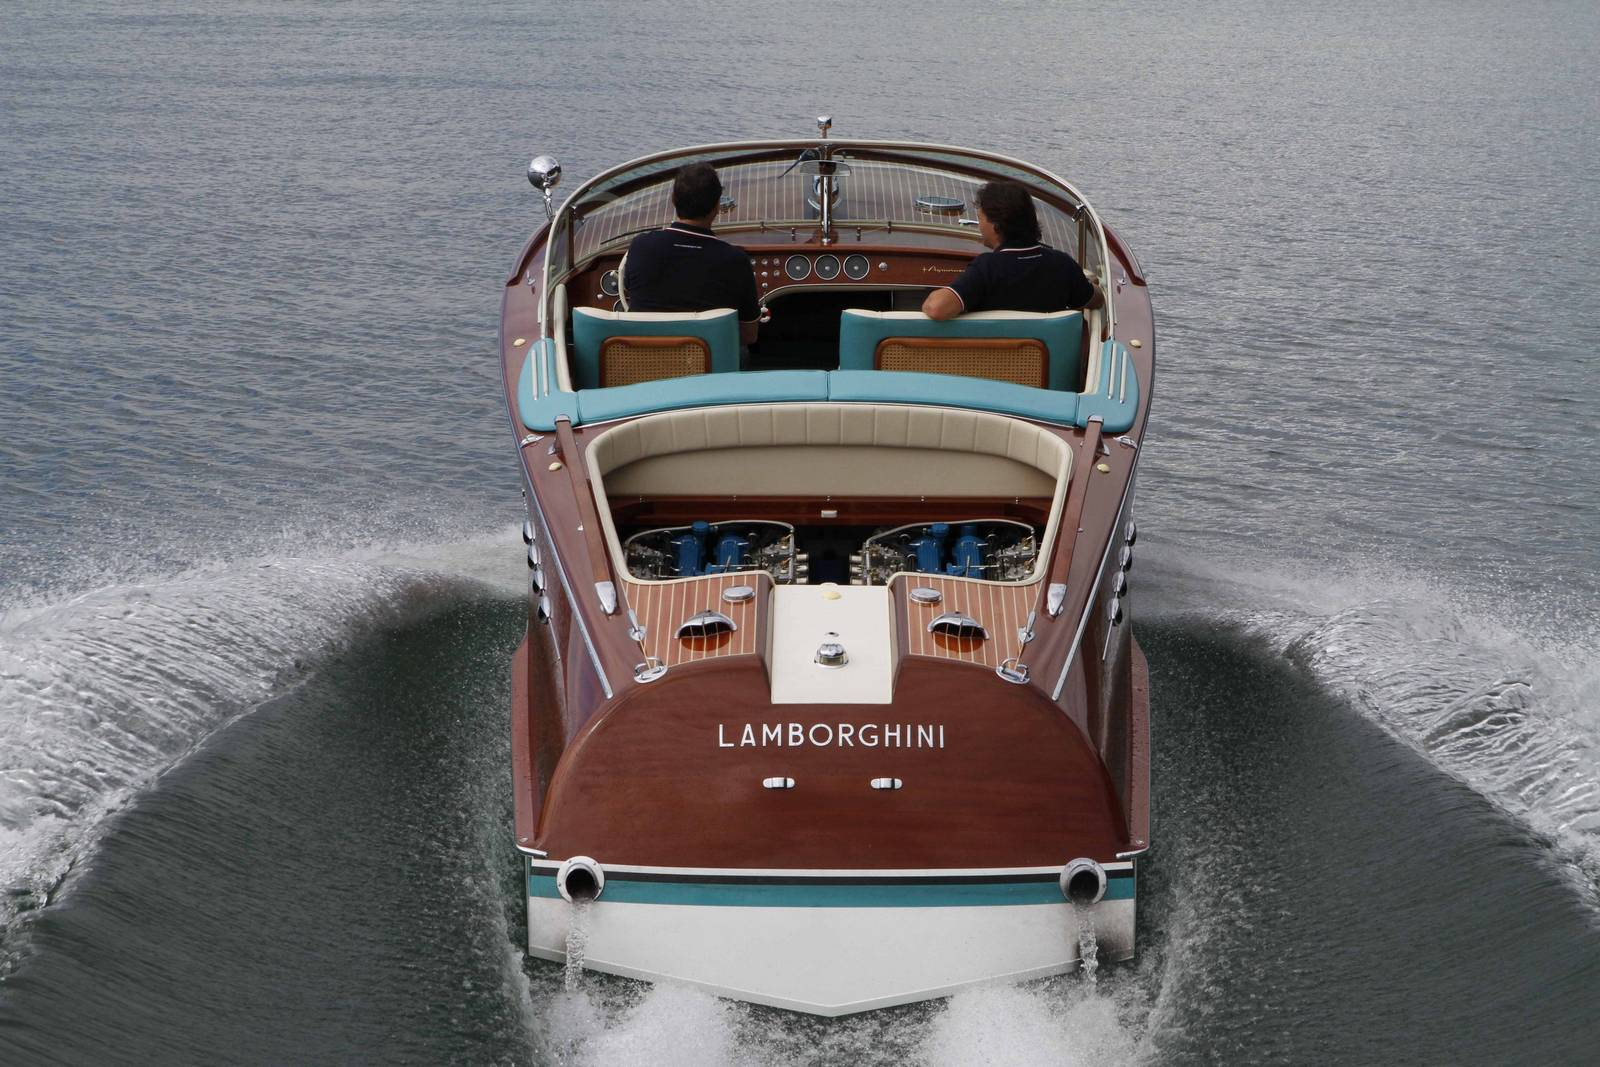 Ferrucio Riva Aquarama Boat Is UP FOR SALE It Features TWO LAMBORGHINI V12 ENGINES 9